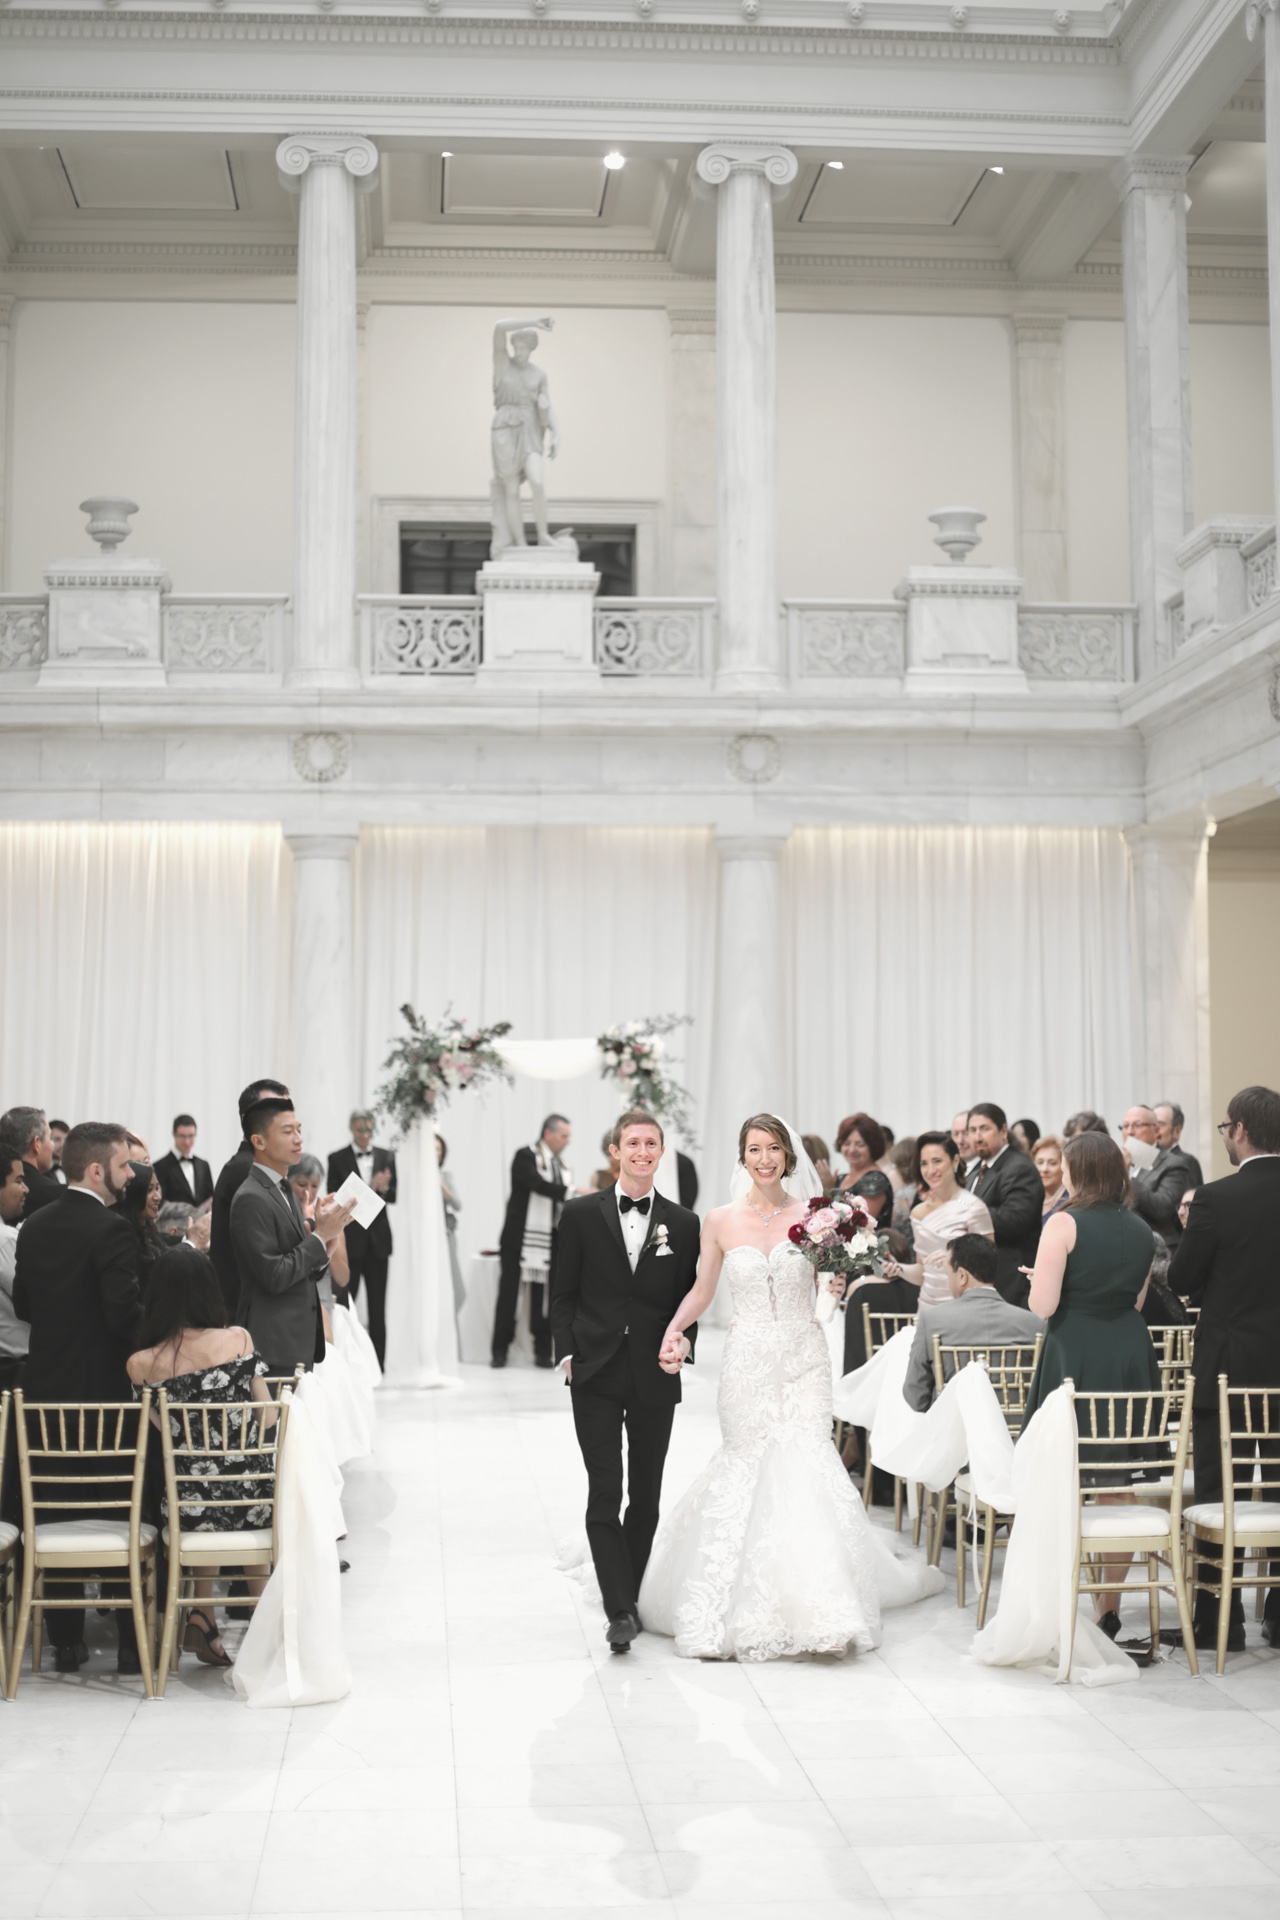 wedding in museum of sculpture at carnegie museum in pittsburgh, pa